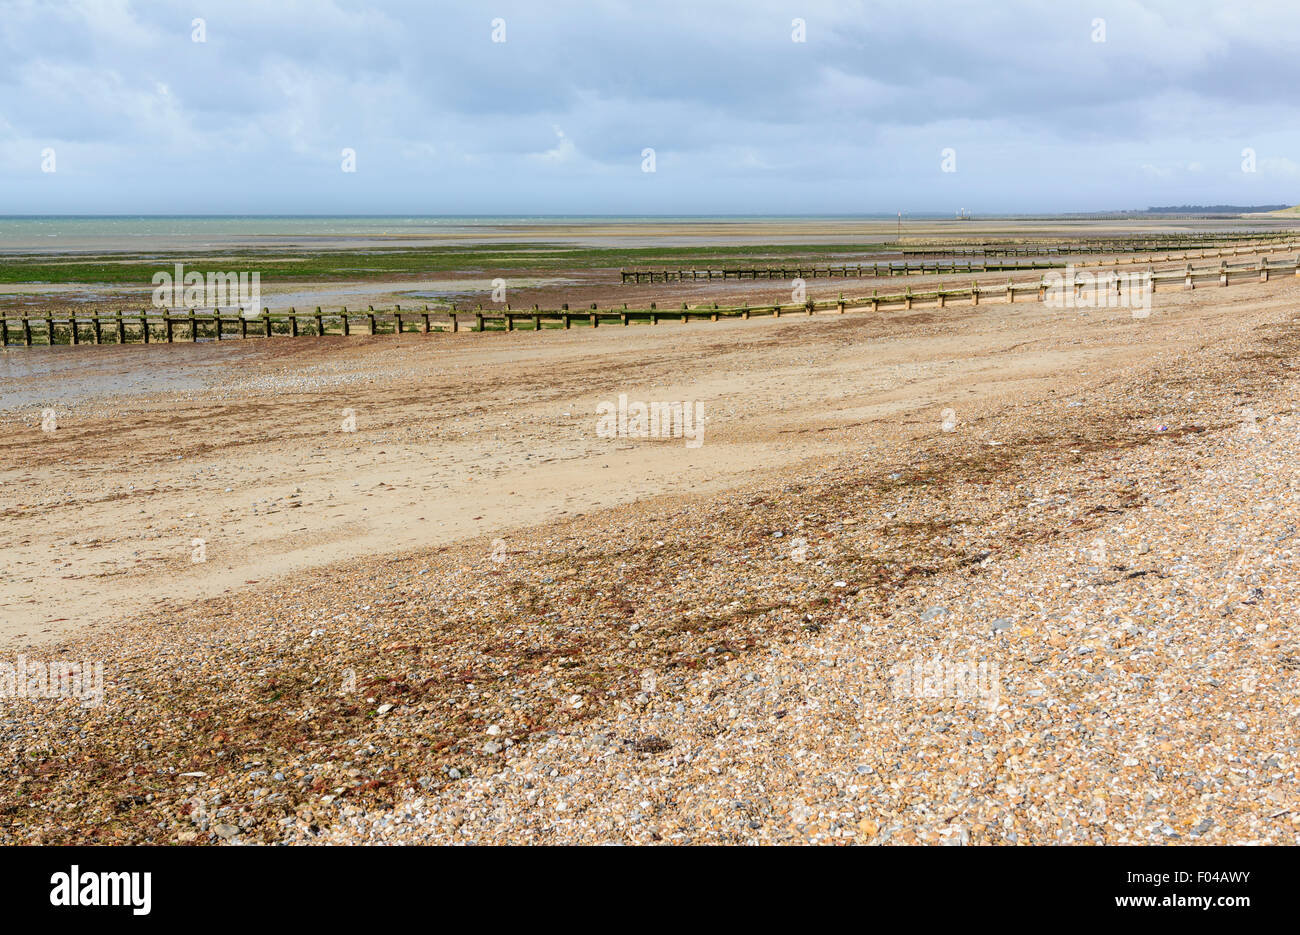 Deserted shingle beach at low tide. - Stock Image